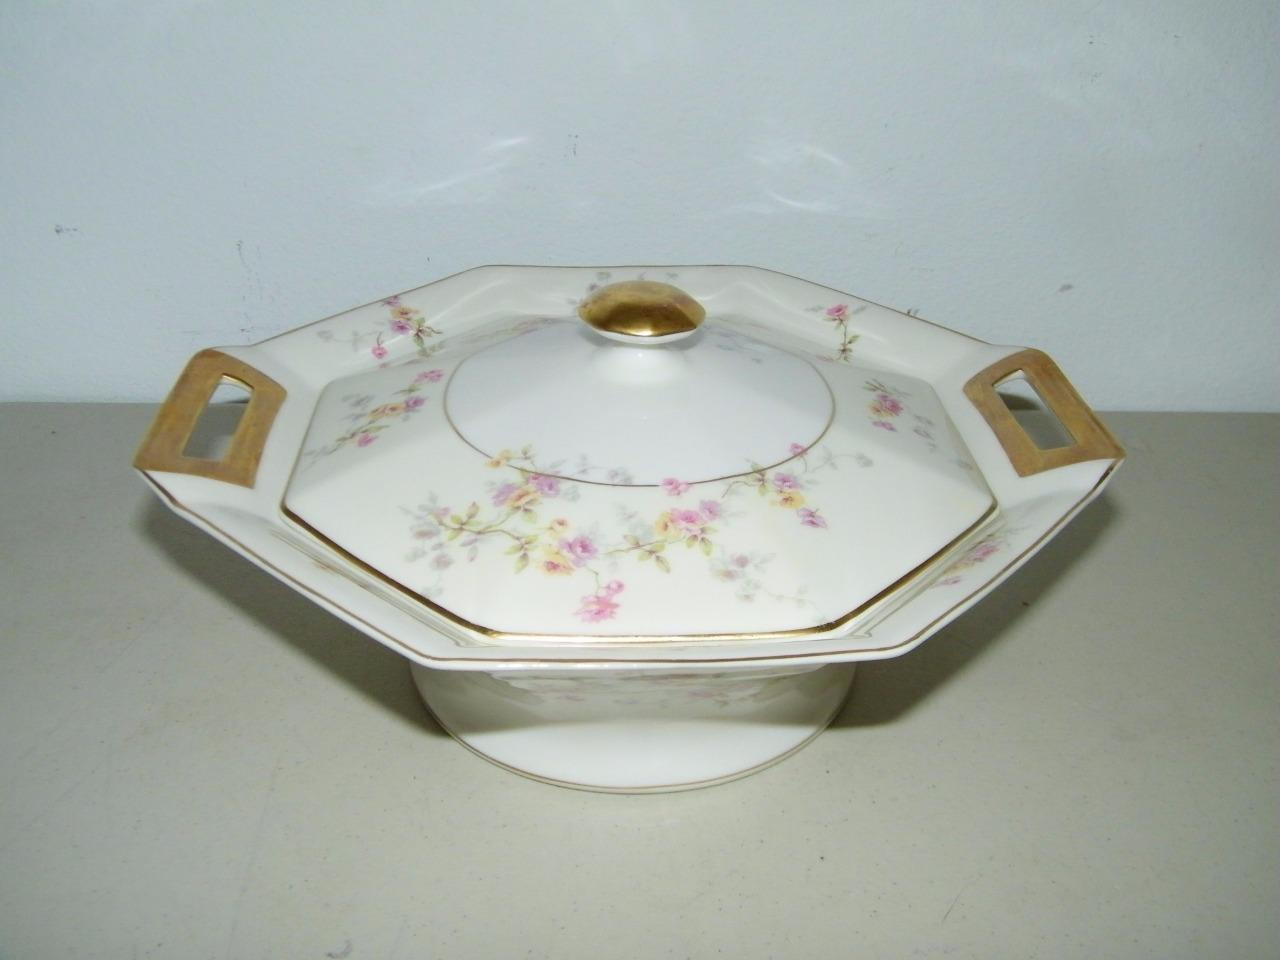 Theodore Haviland China: 1 customer review and 32 listings